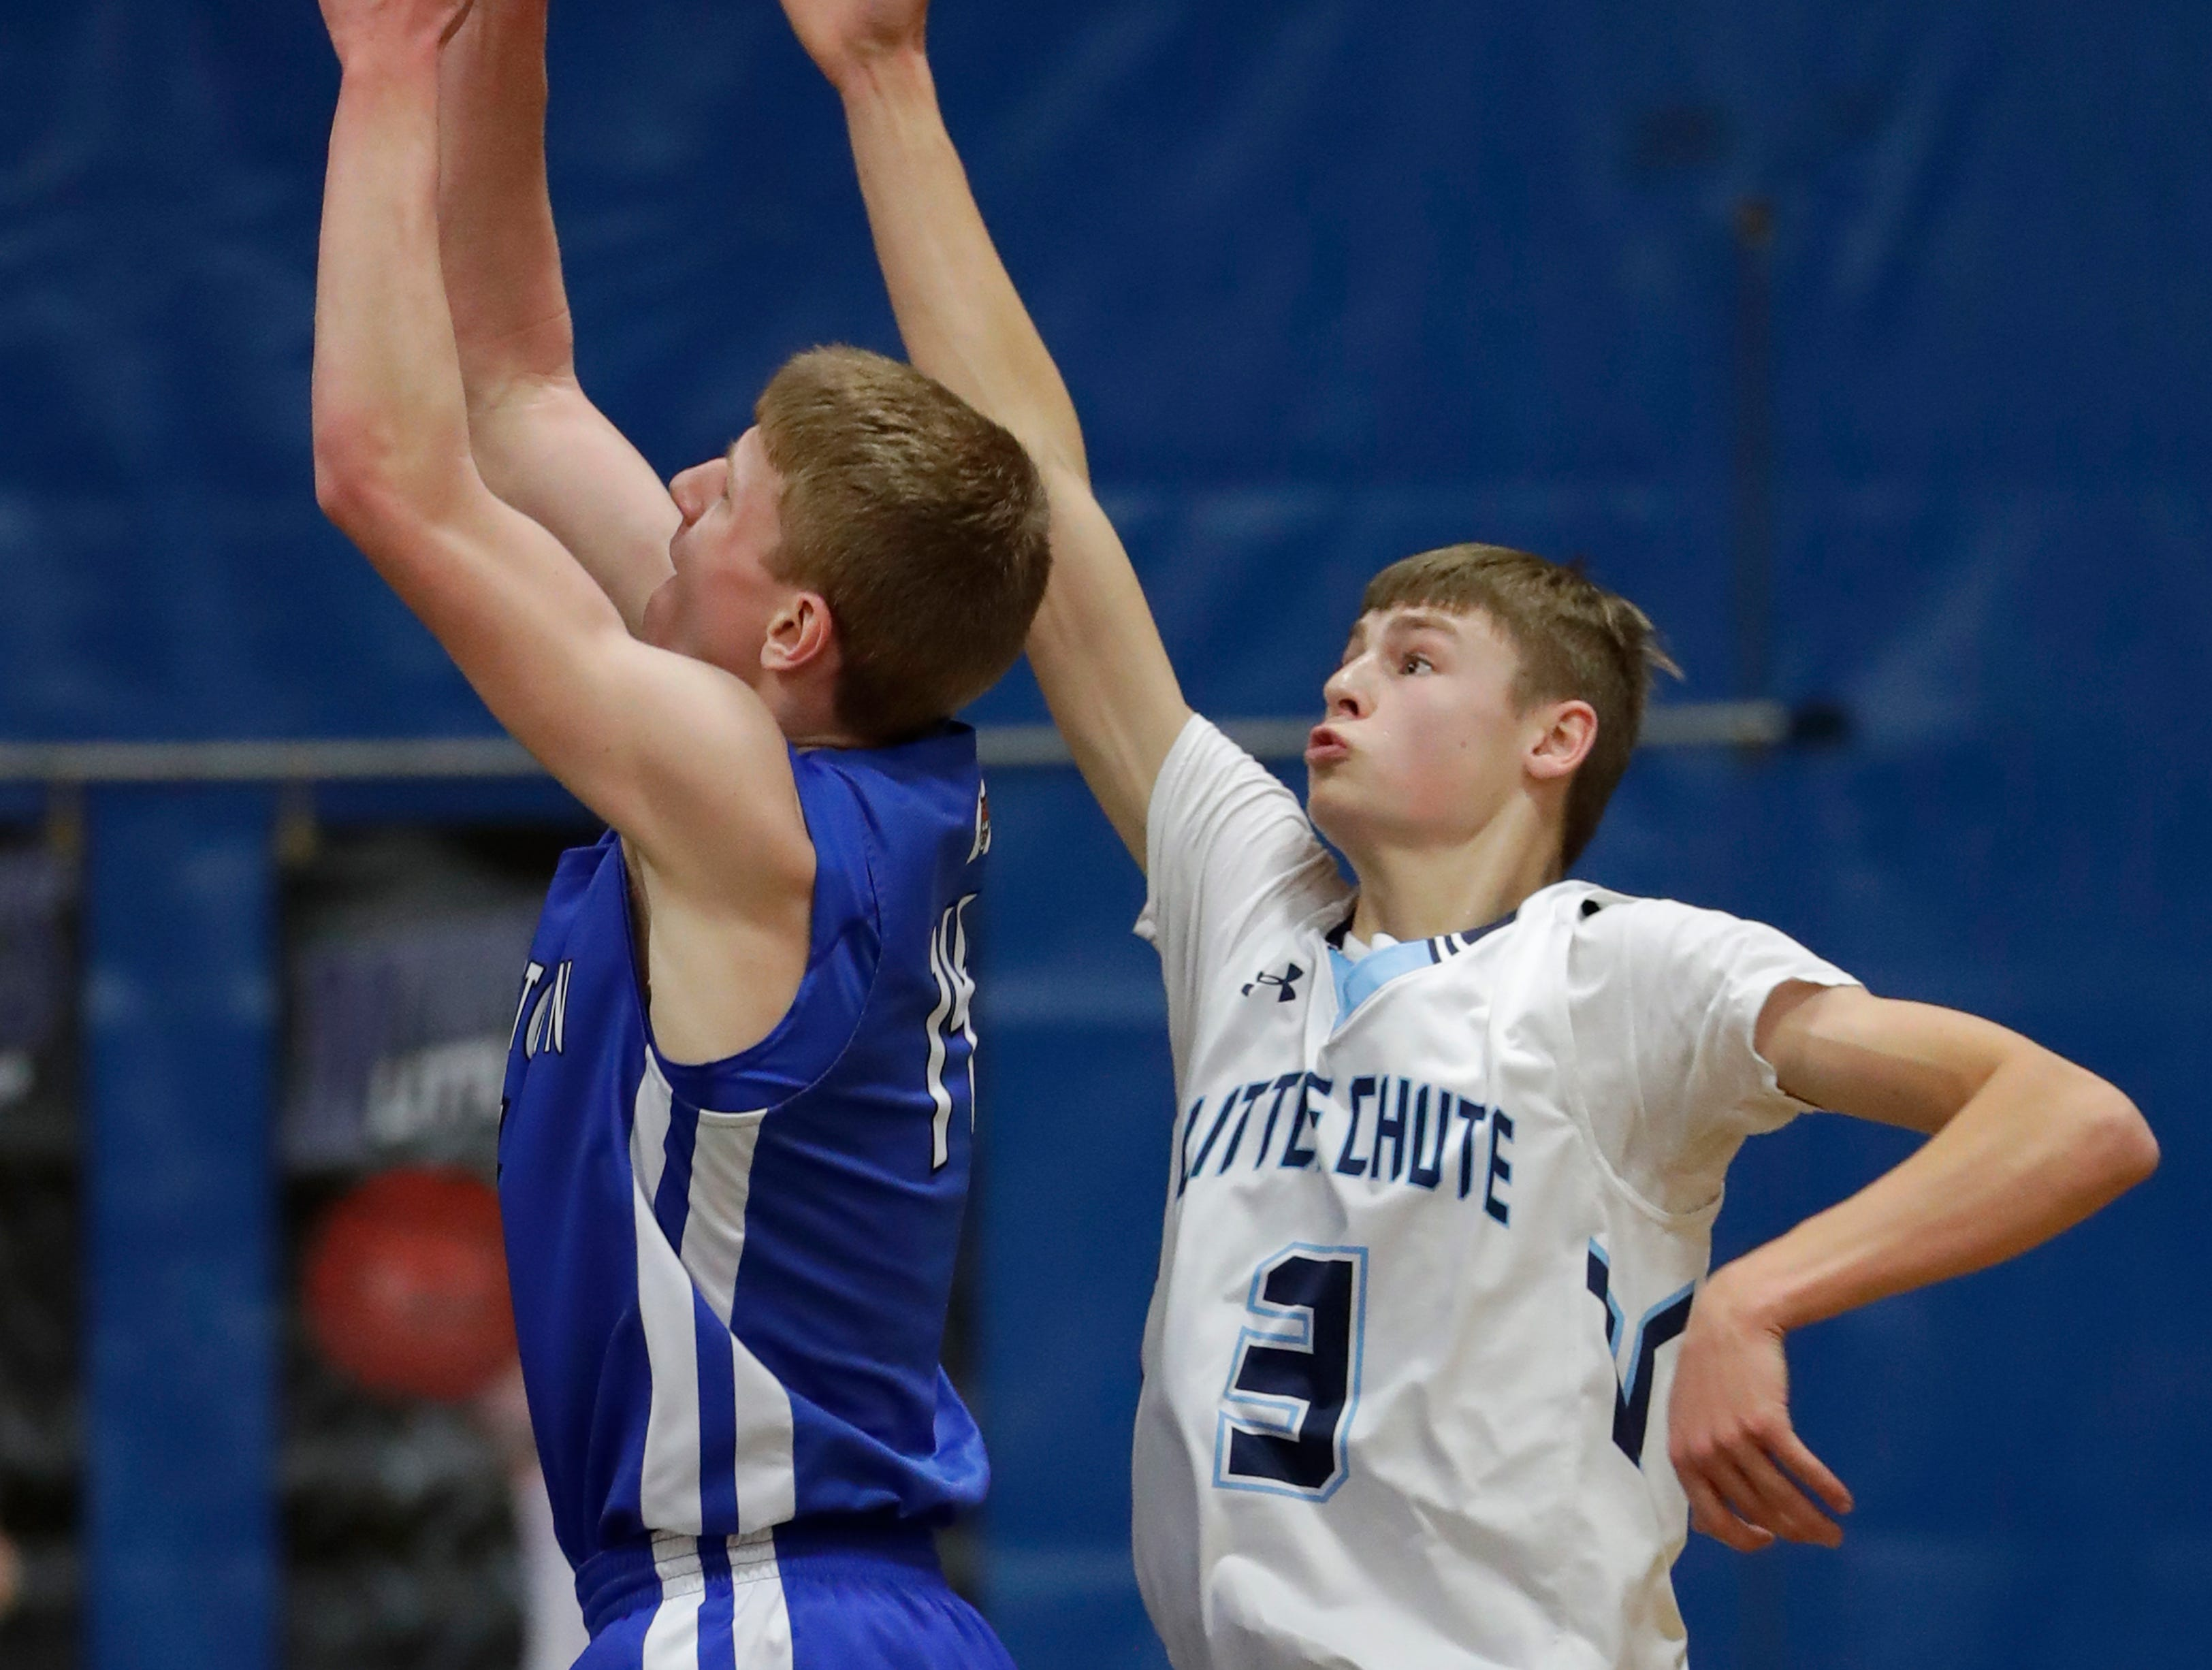 Wrightstown High School's Mayson Hazaert ,left, scores against Little Chute High School's Justin Job during their boys basketball game Friday, February 1, 2019, in Little Chute, Wis. 